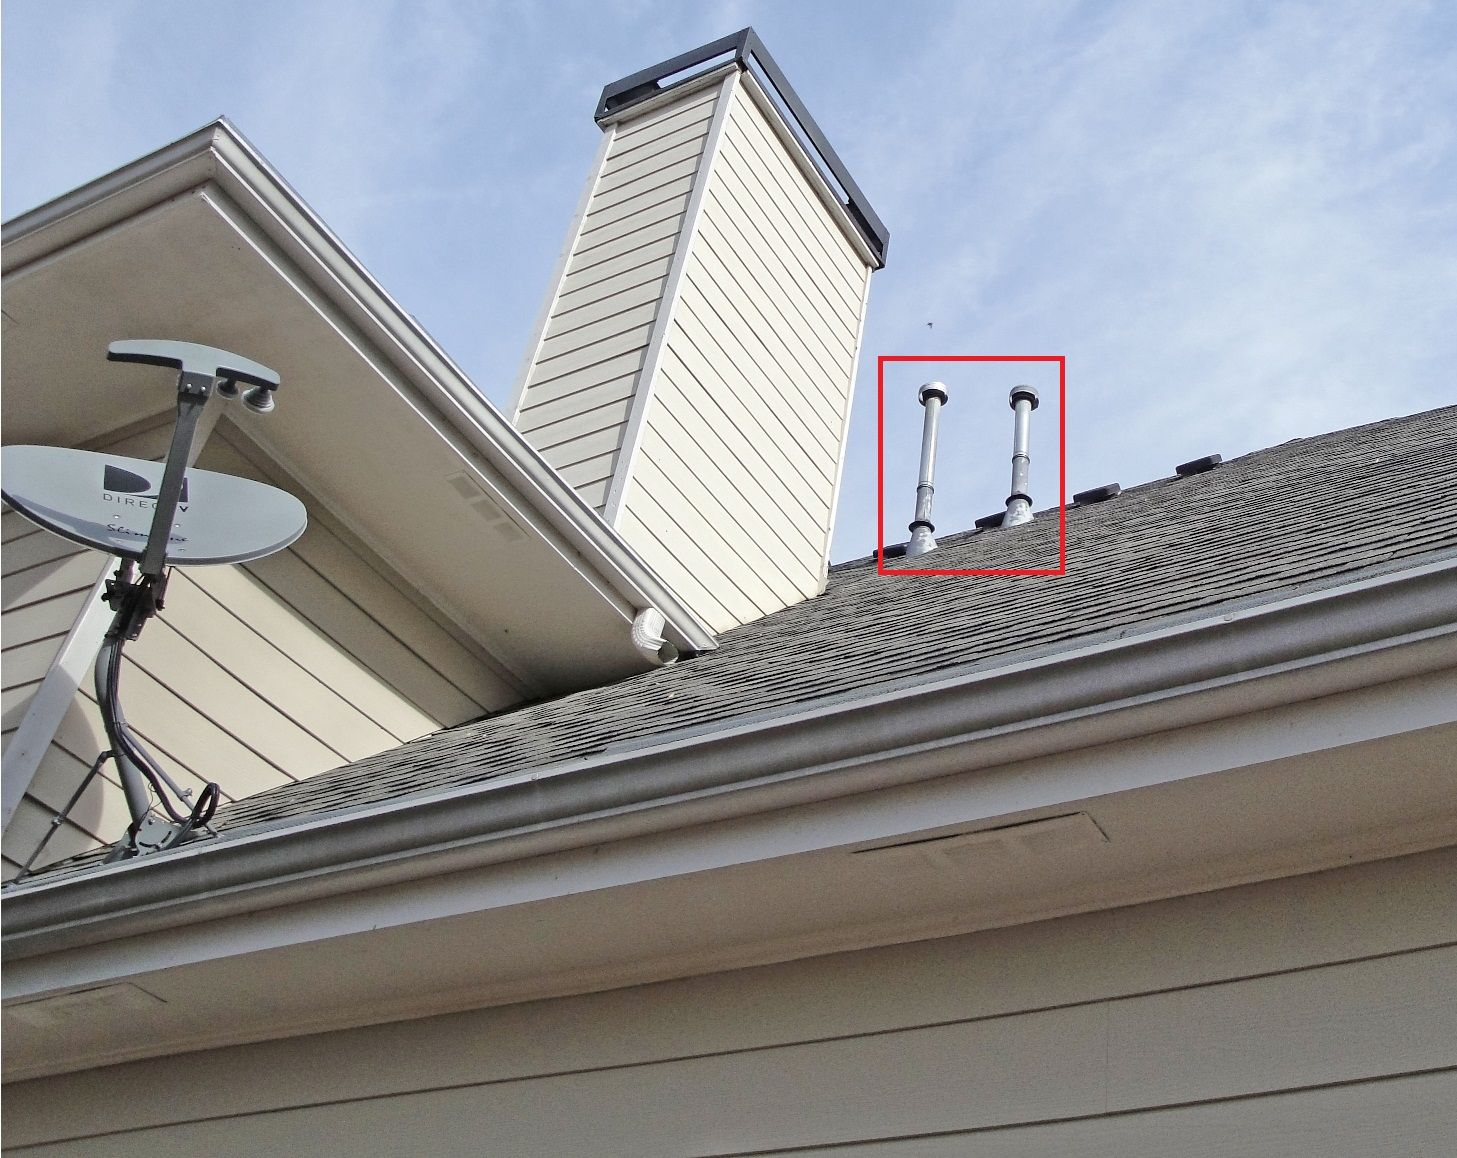 How To Fix A Leaky Gas Flue Roof Vent Part 1 Roof Vents Roof Vented